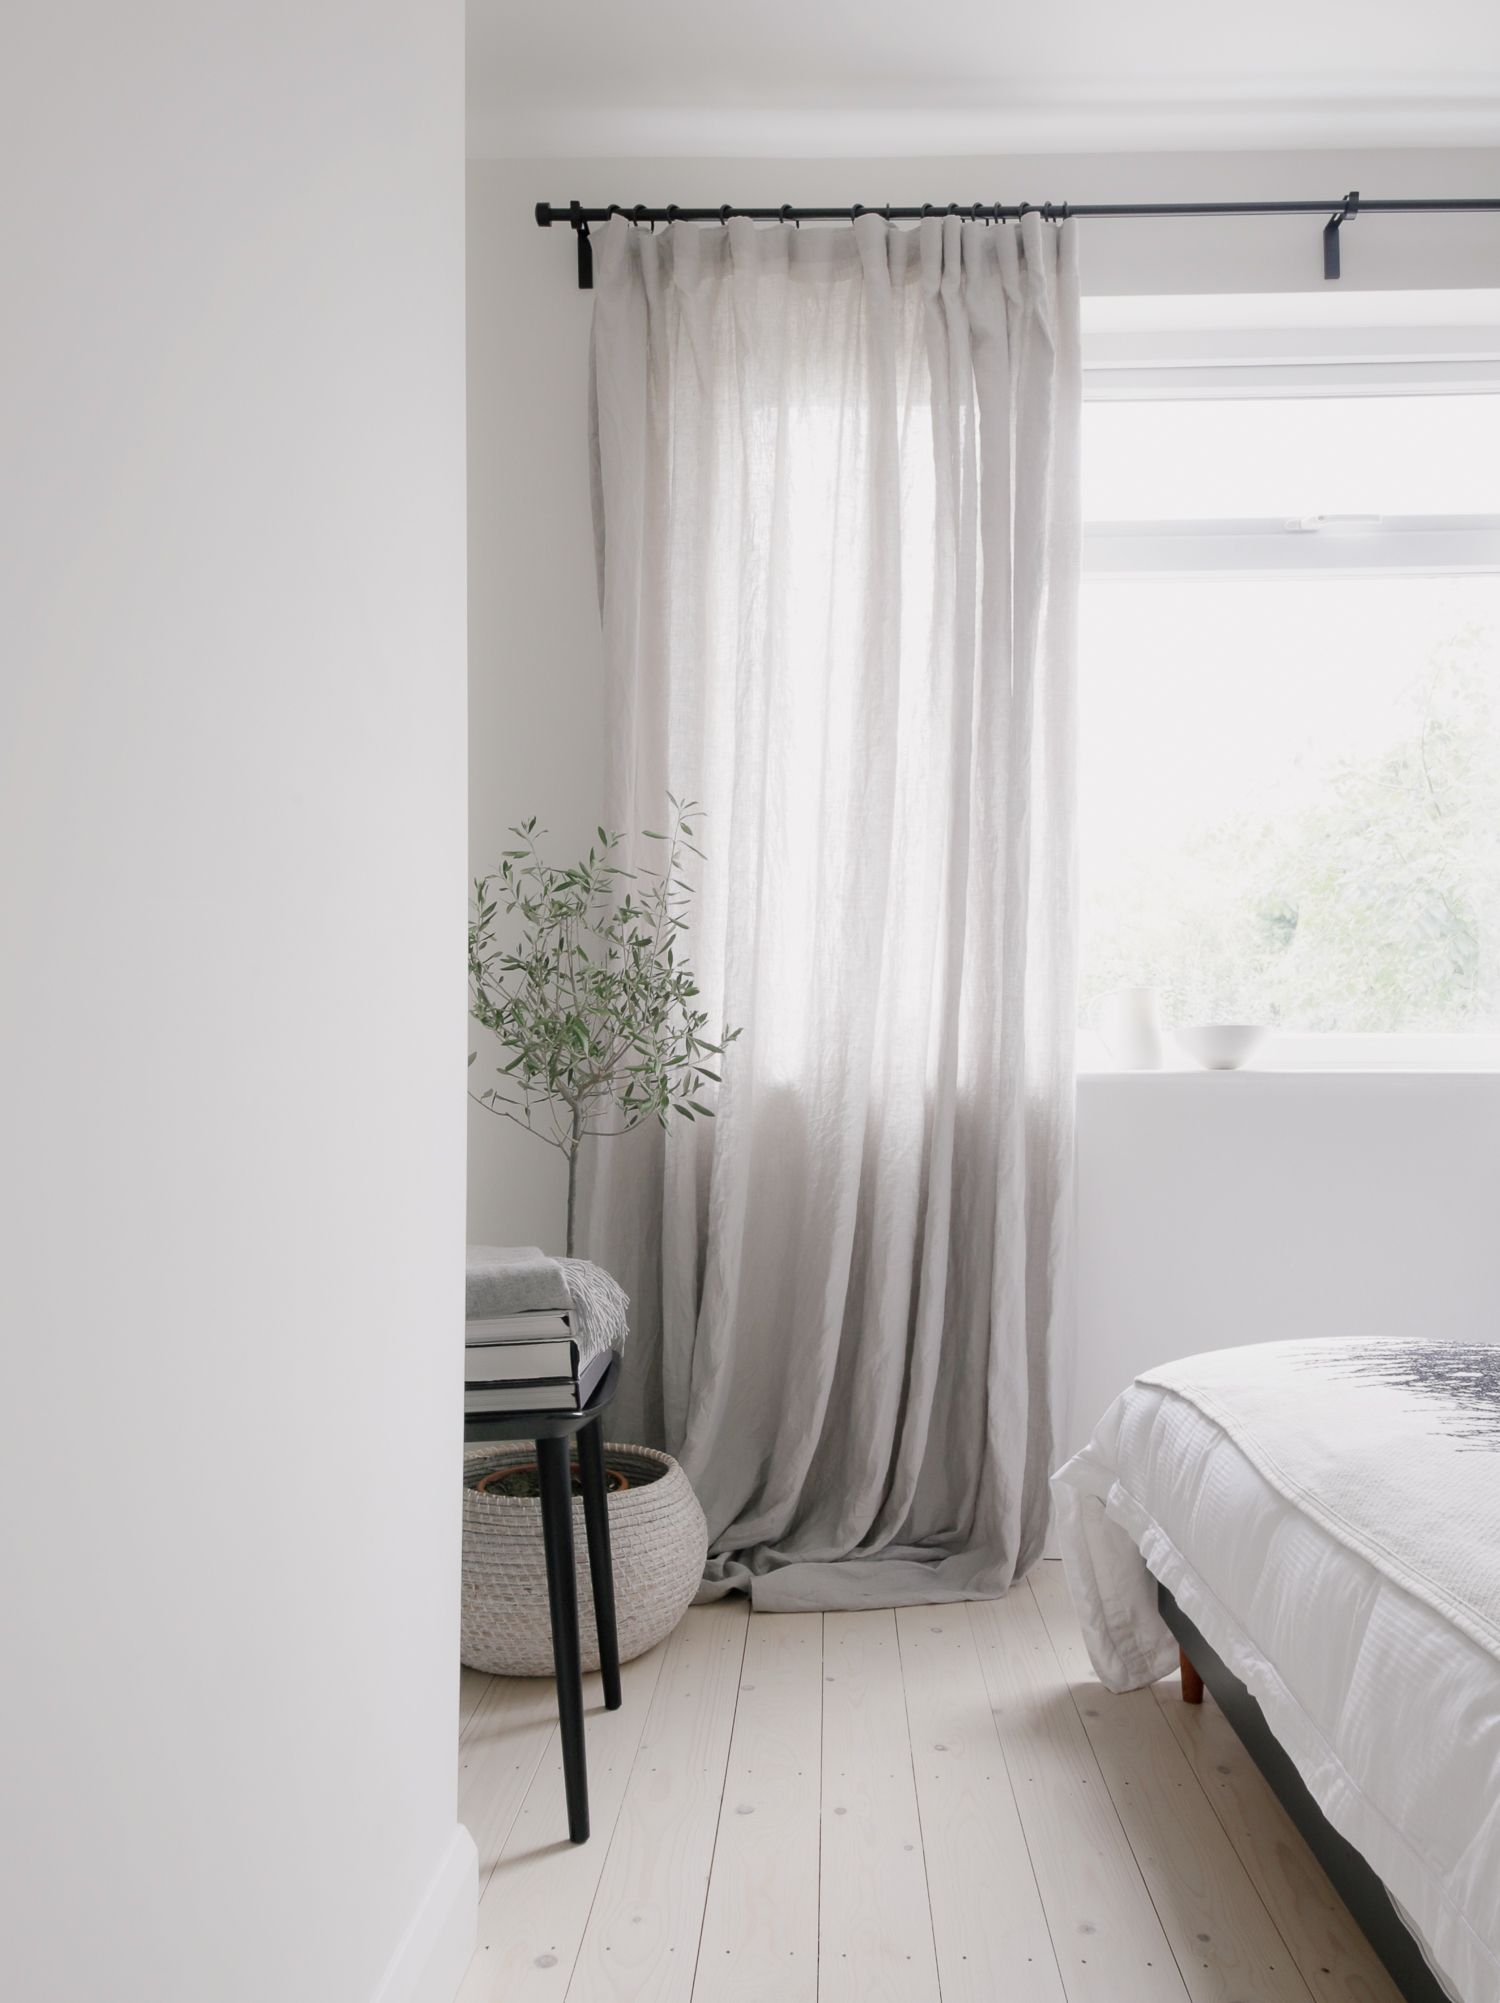 LIght minimalist bedroom with pale wooden flooring and linen curtains.